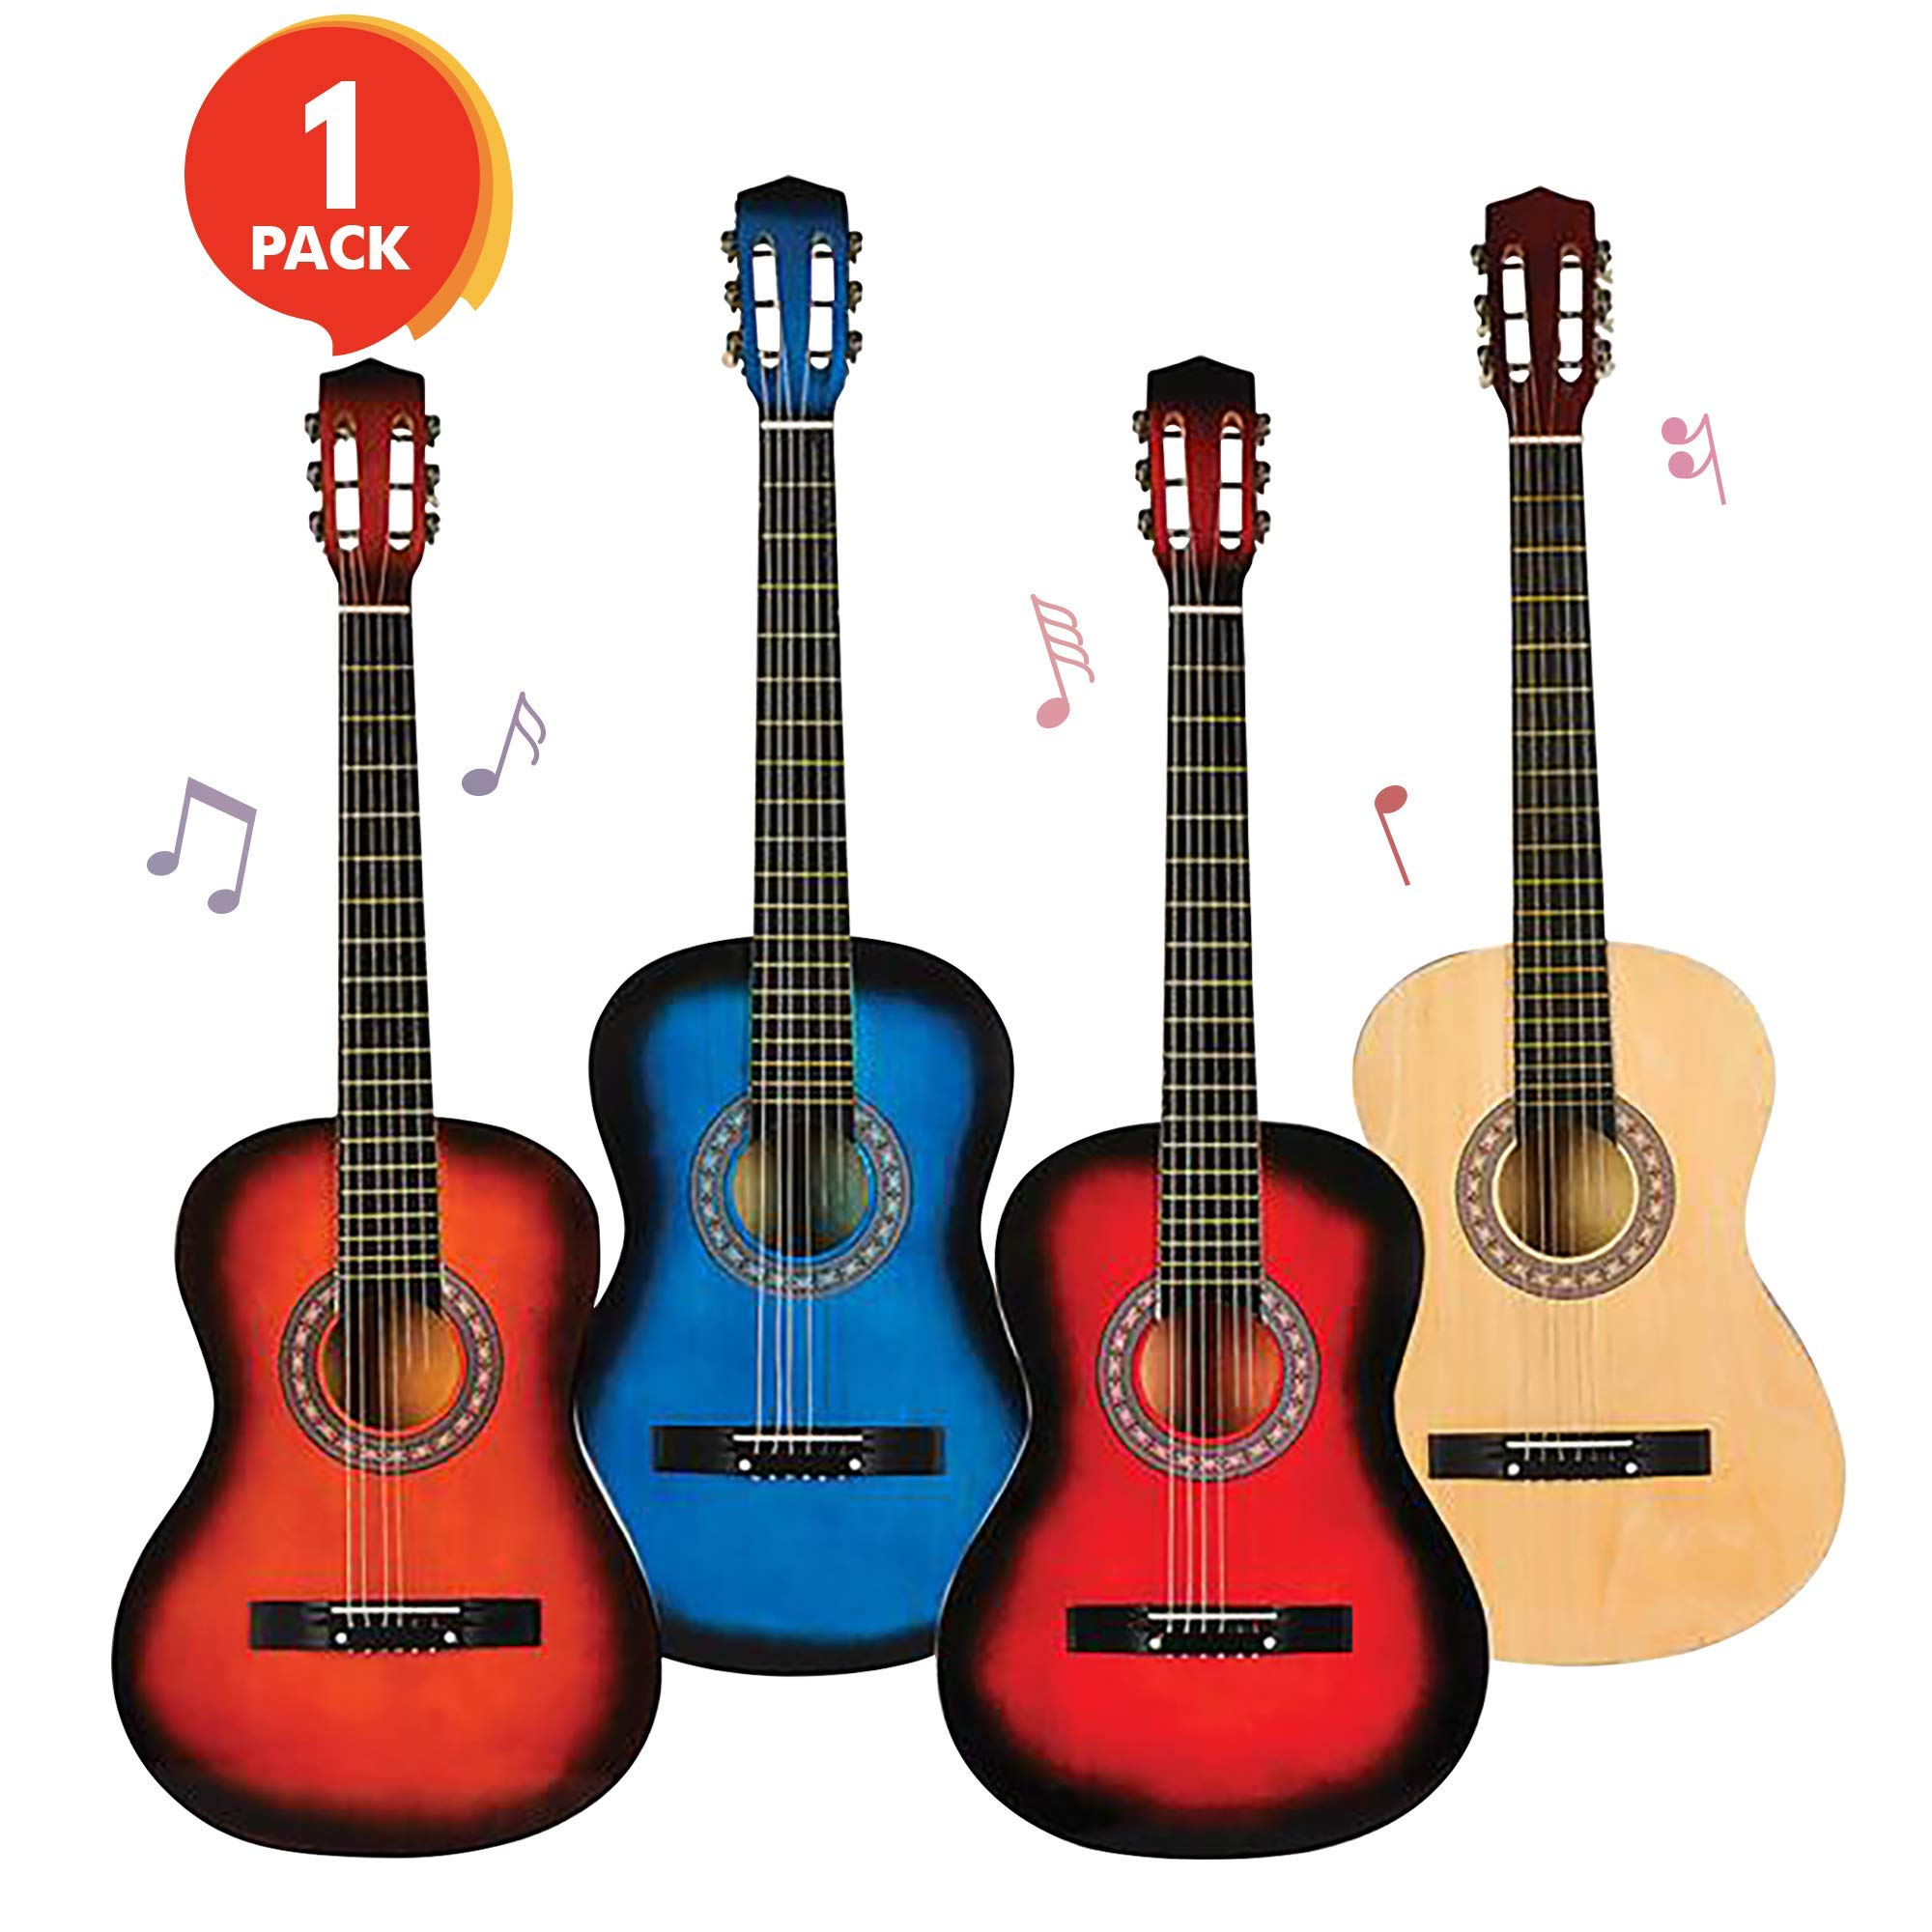 ArtCreativity Huge 6-String Acoustic Guitar - 38 Inches Tall - Colors May Vary - Amazing Gift Idea for Boys and Girls 12+